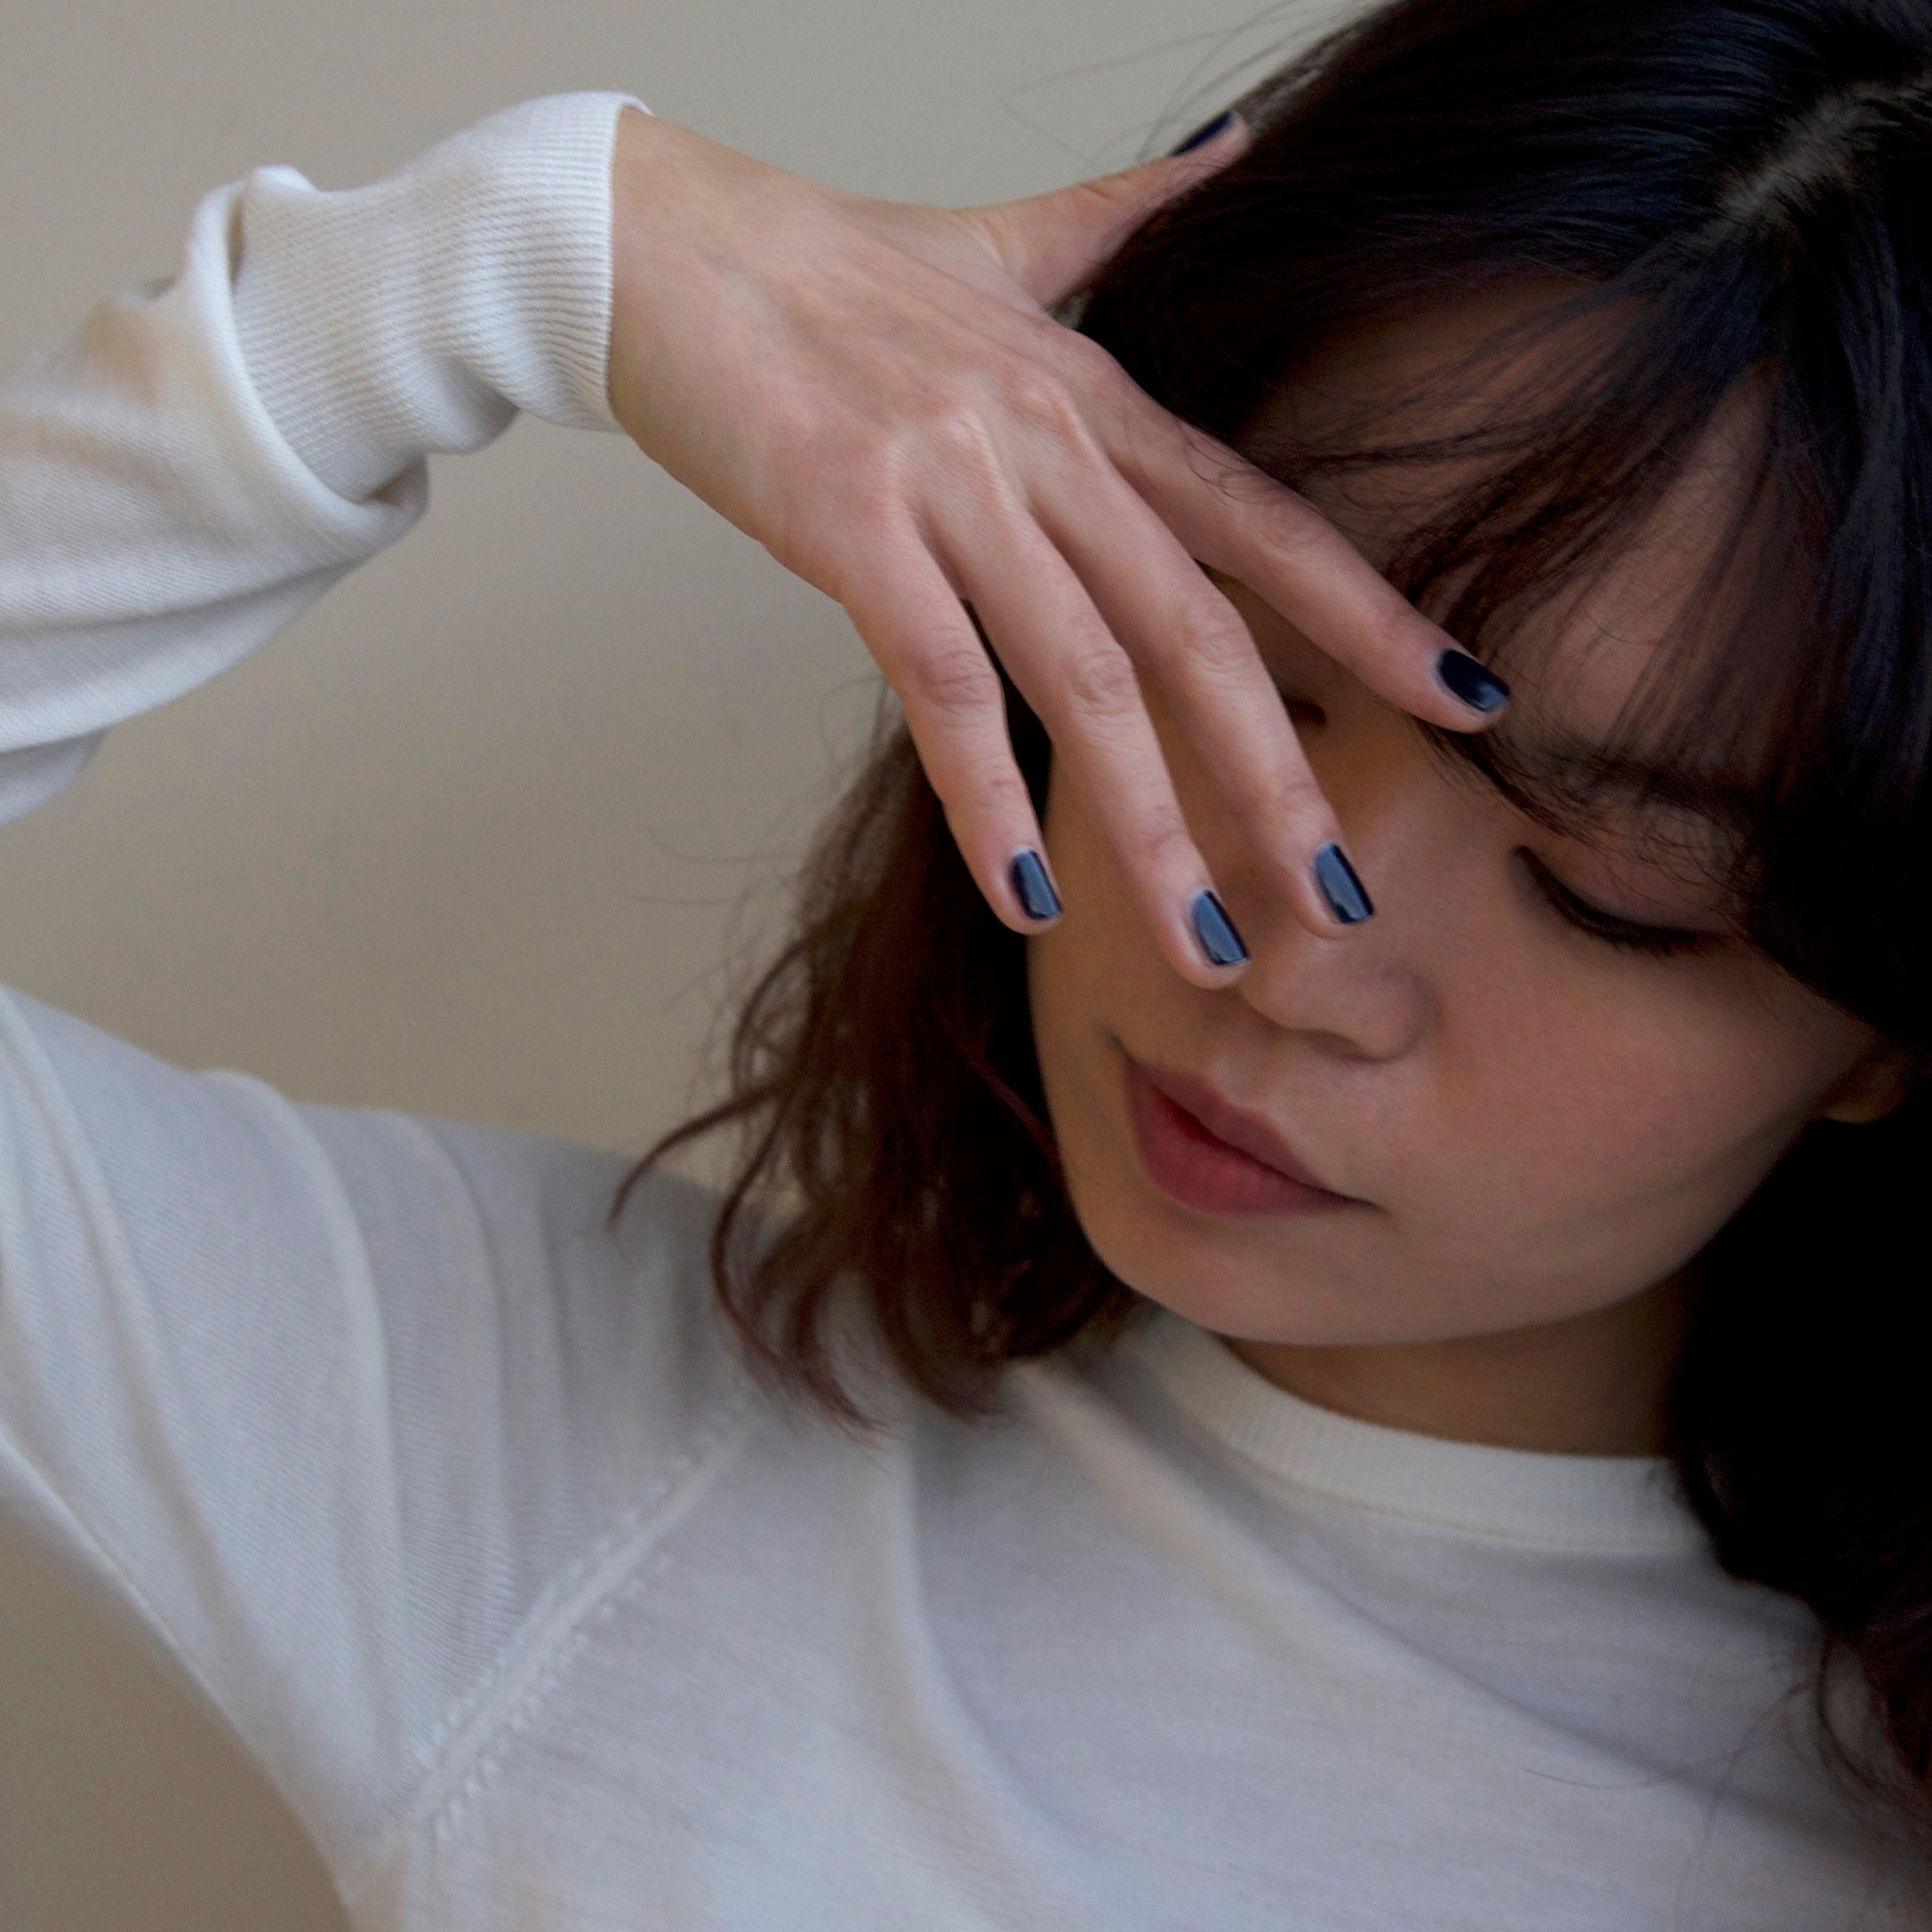 A female with her hand across her face wearing Midnight Sky, a dark blue nail polish.